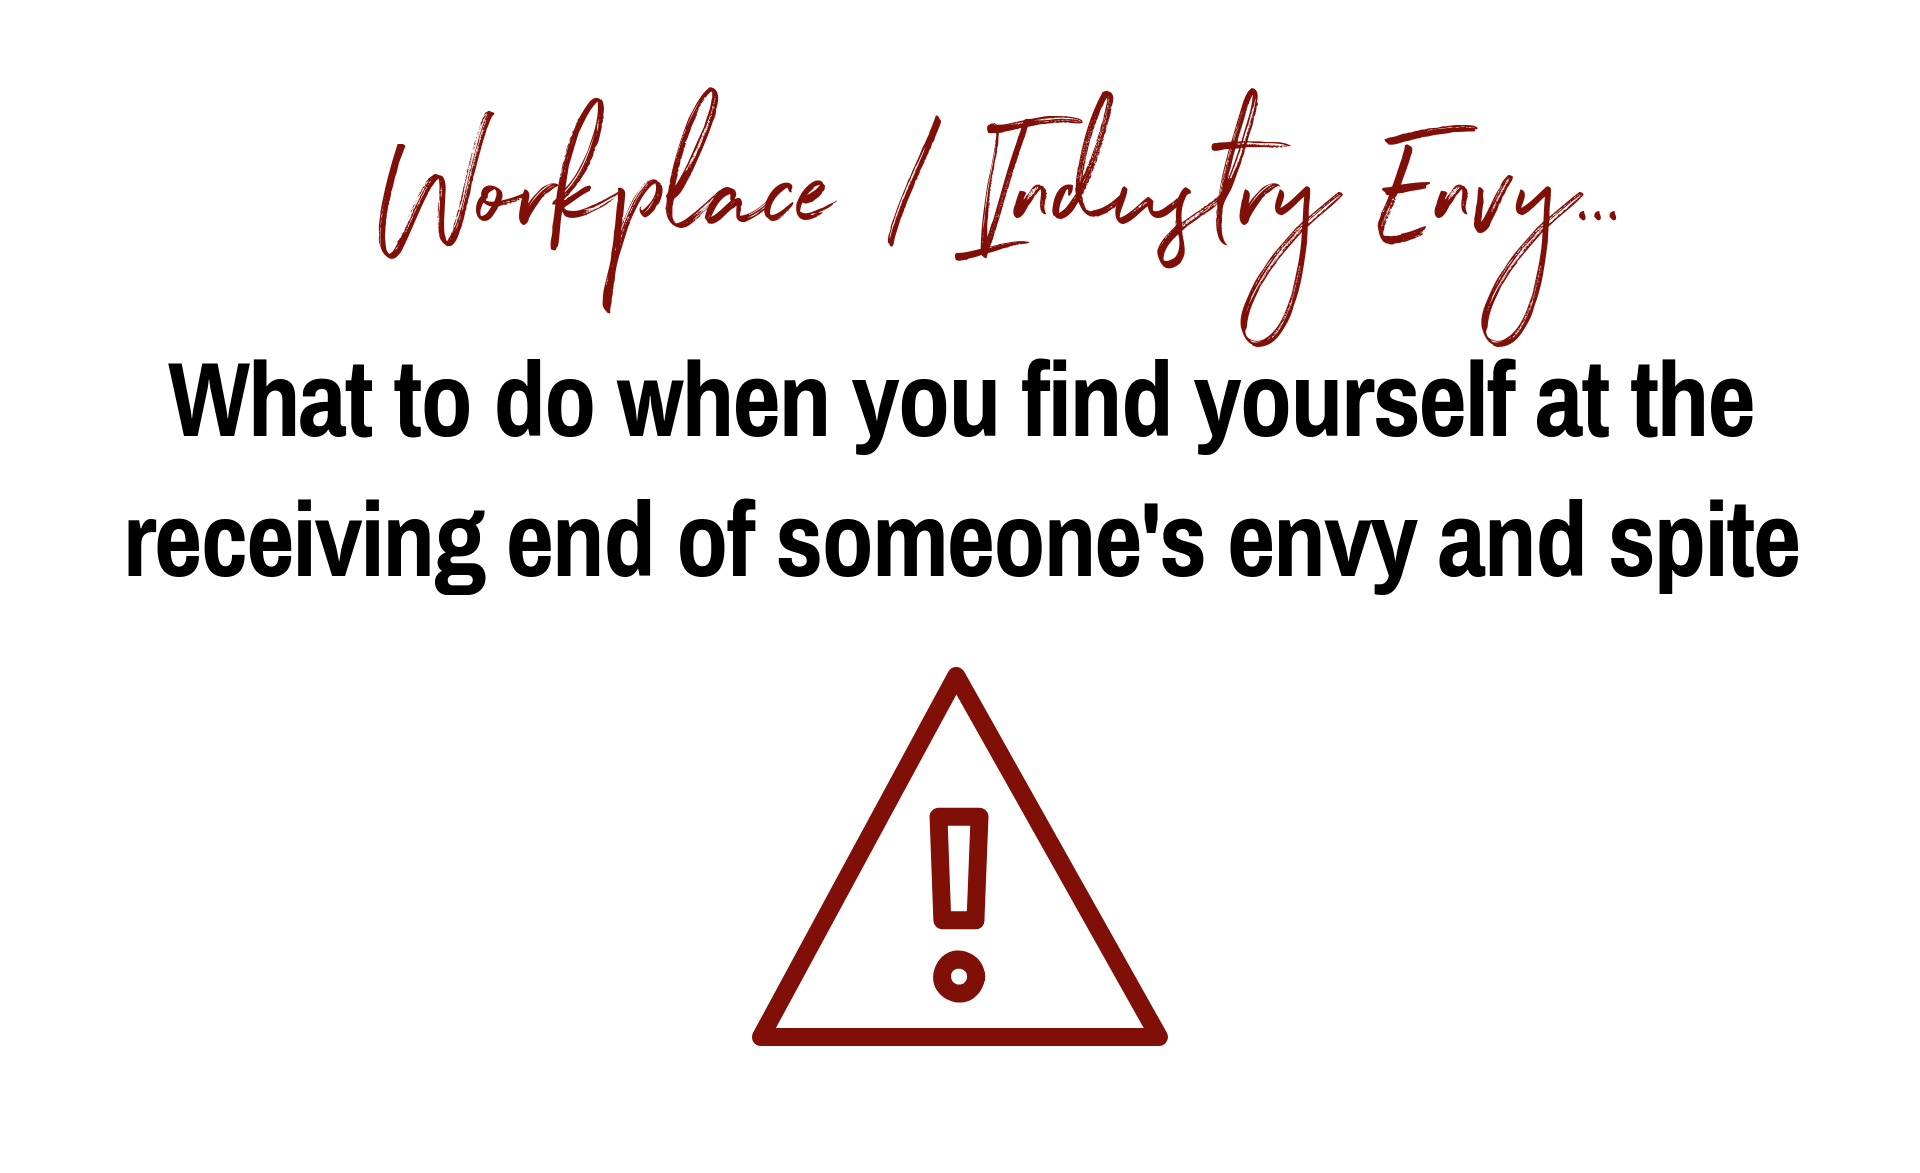 Workplace Envy: What to do (and not do) when you're at the receiving end of someone's spite and criticism